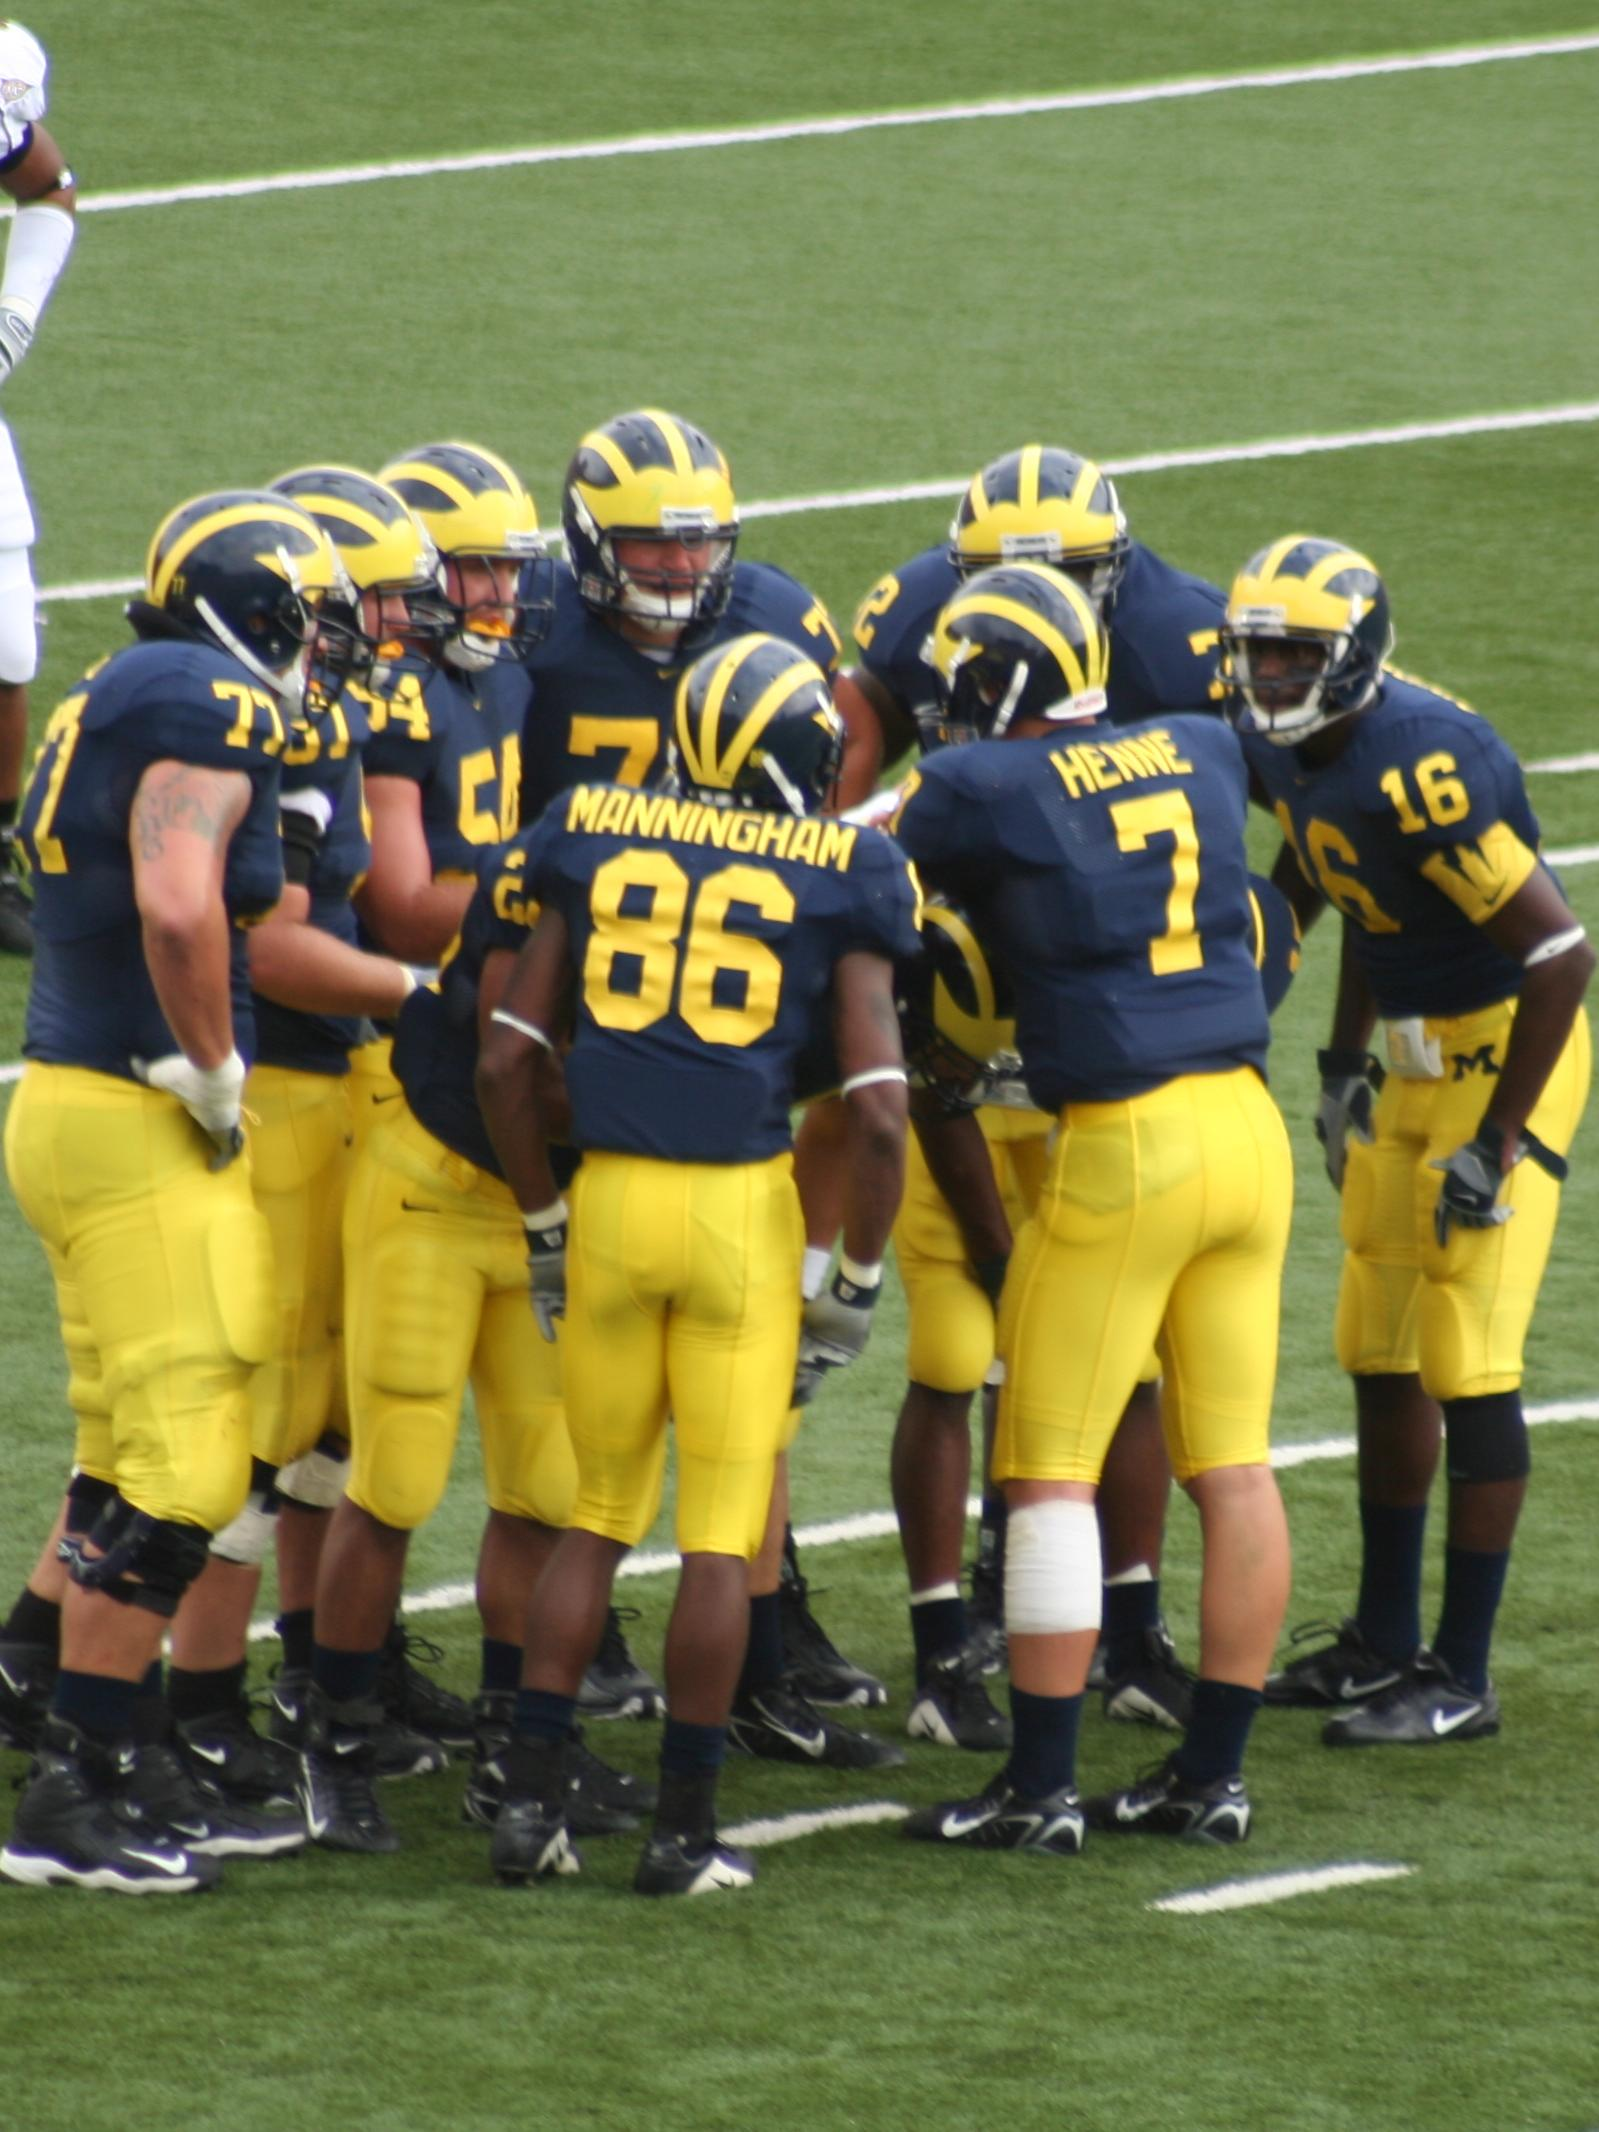 reputable site 70843 da811 michigan wolverines jersey numbers